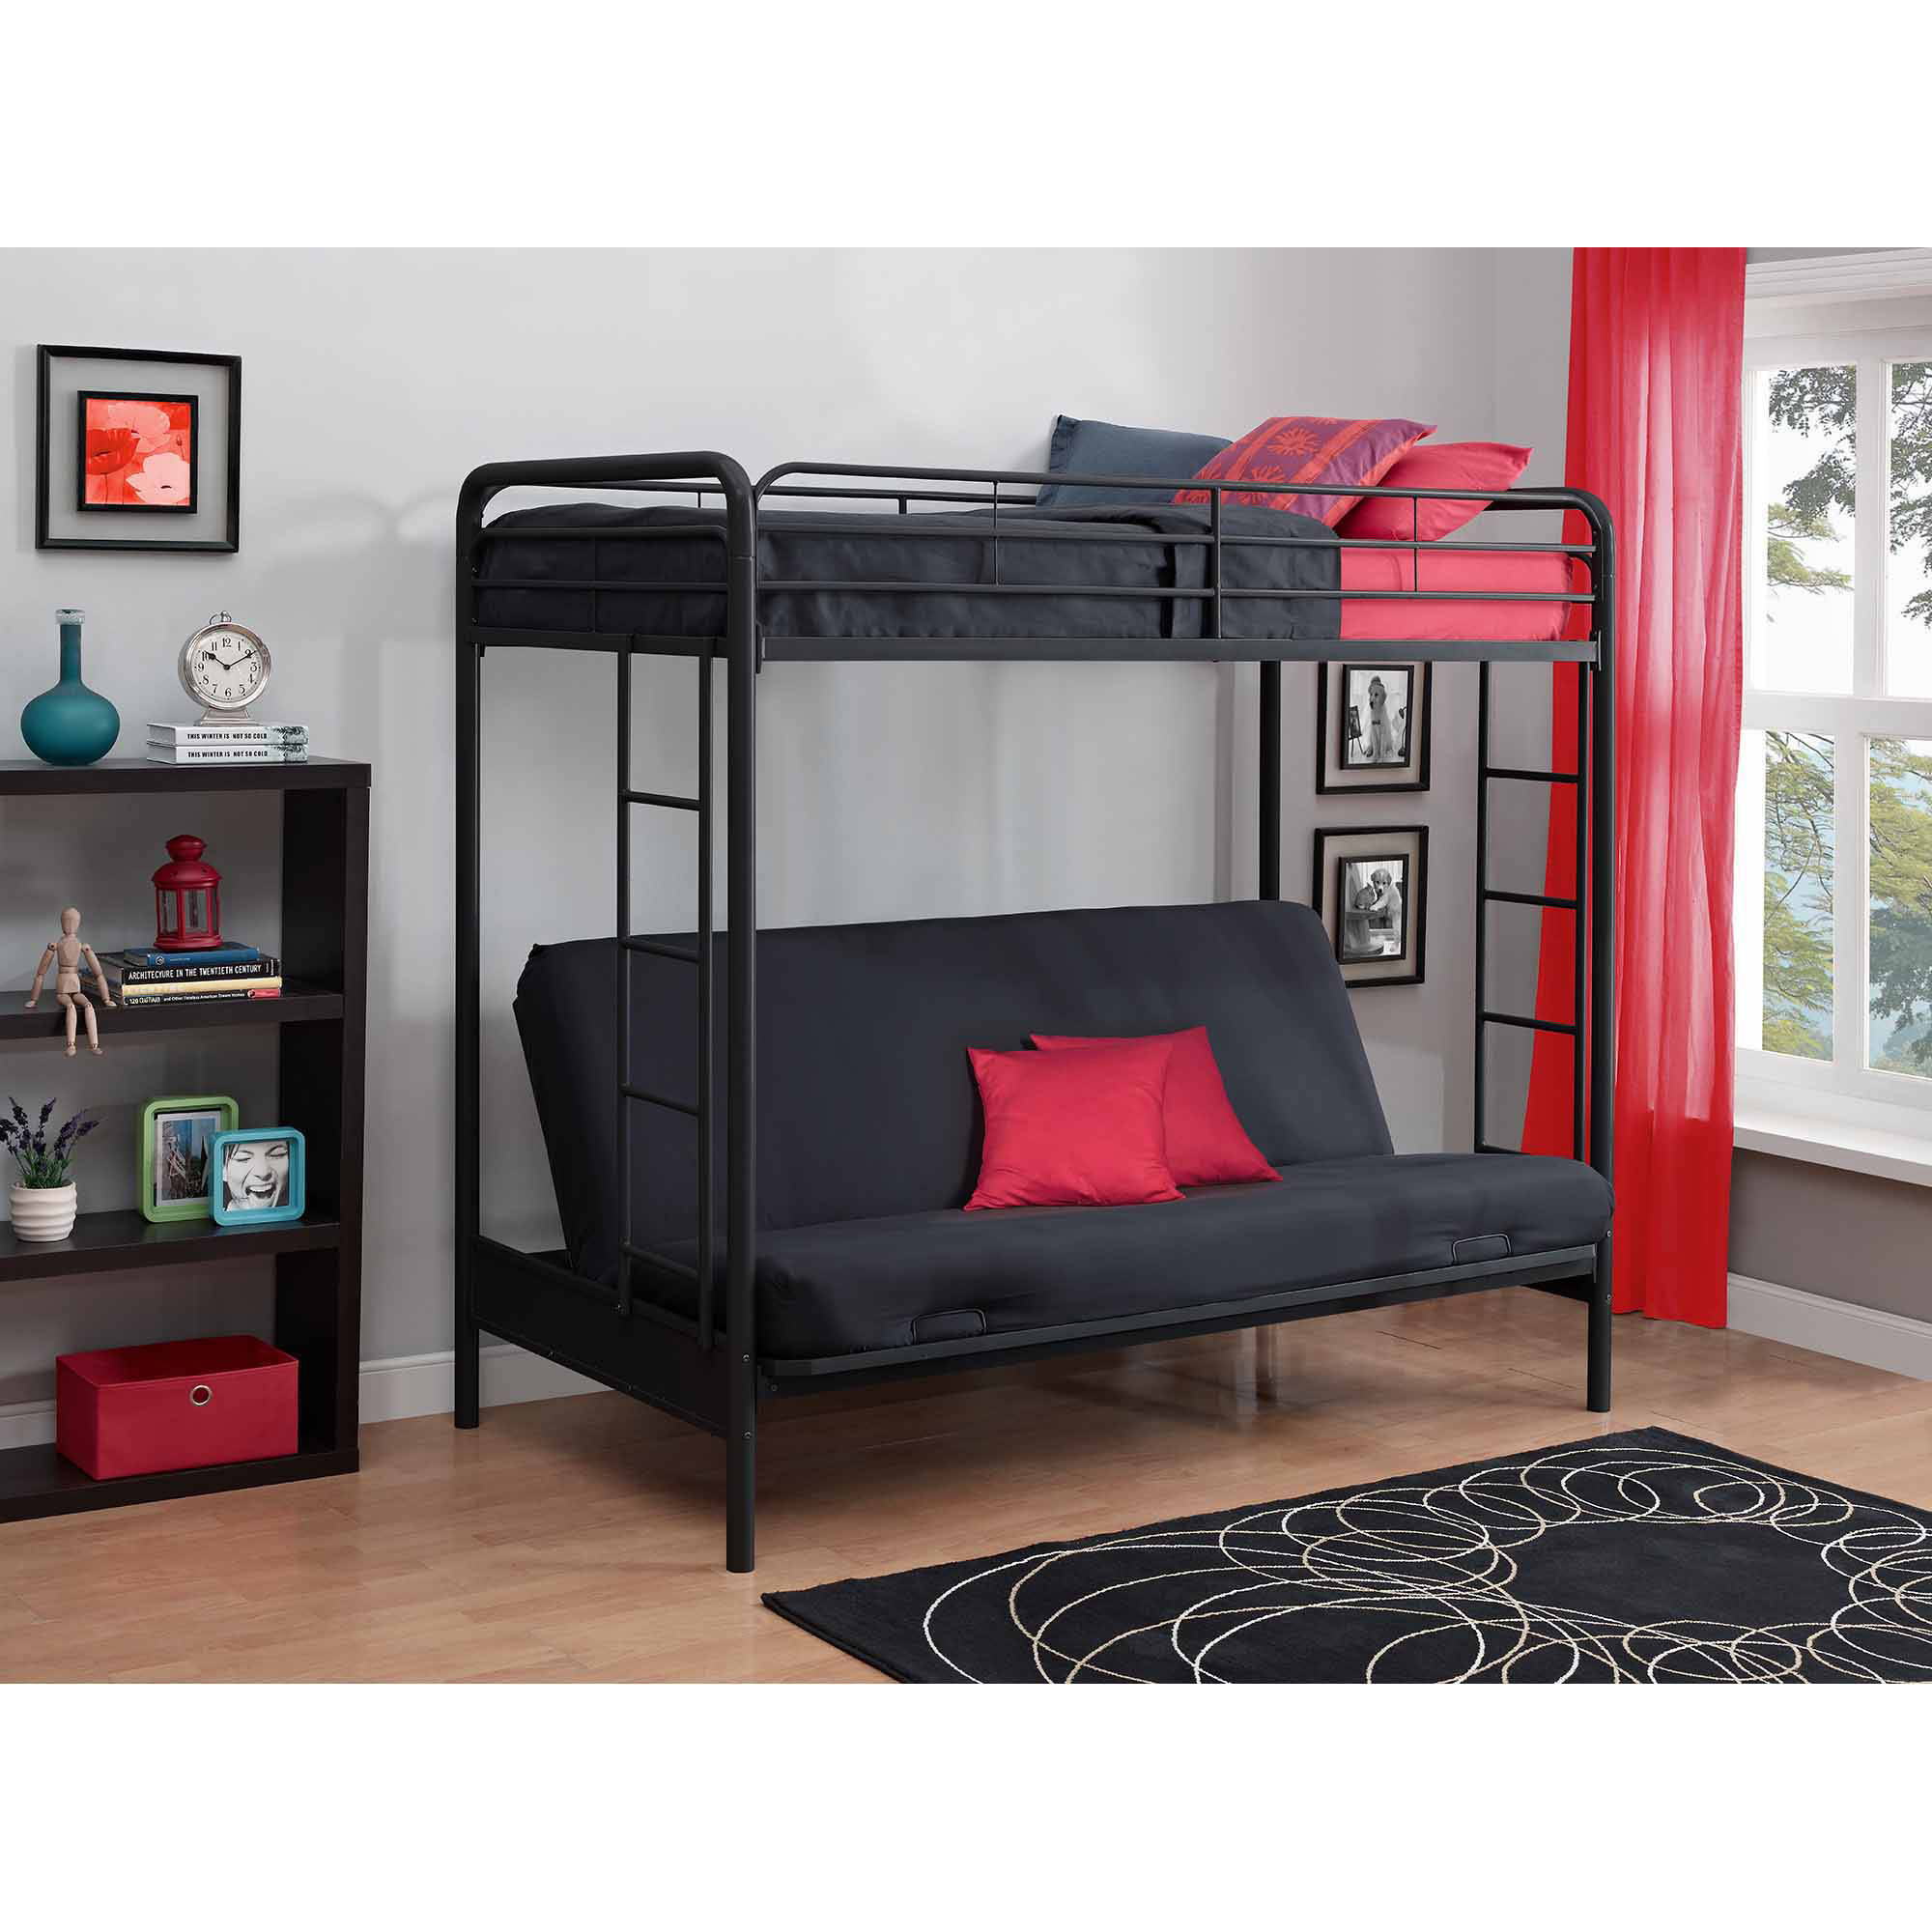 kids rooms walmartcom - Picture Of Furniture For Bedroom